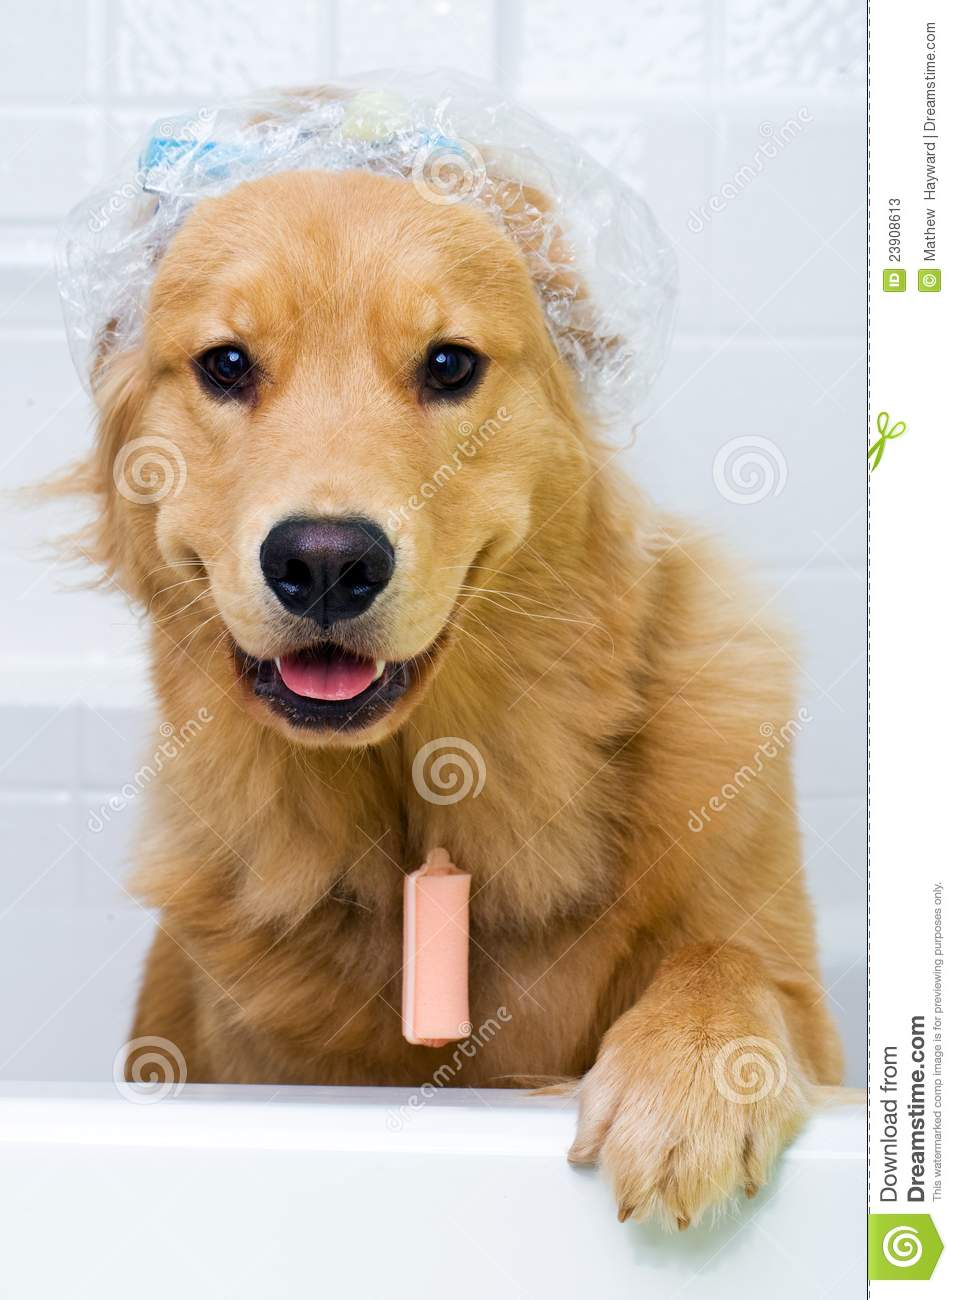 Funny Dog With Hair Curlers And A Shower Cap Stock Photos